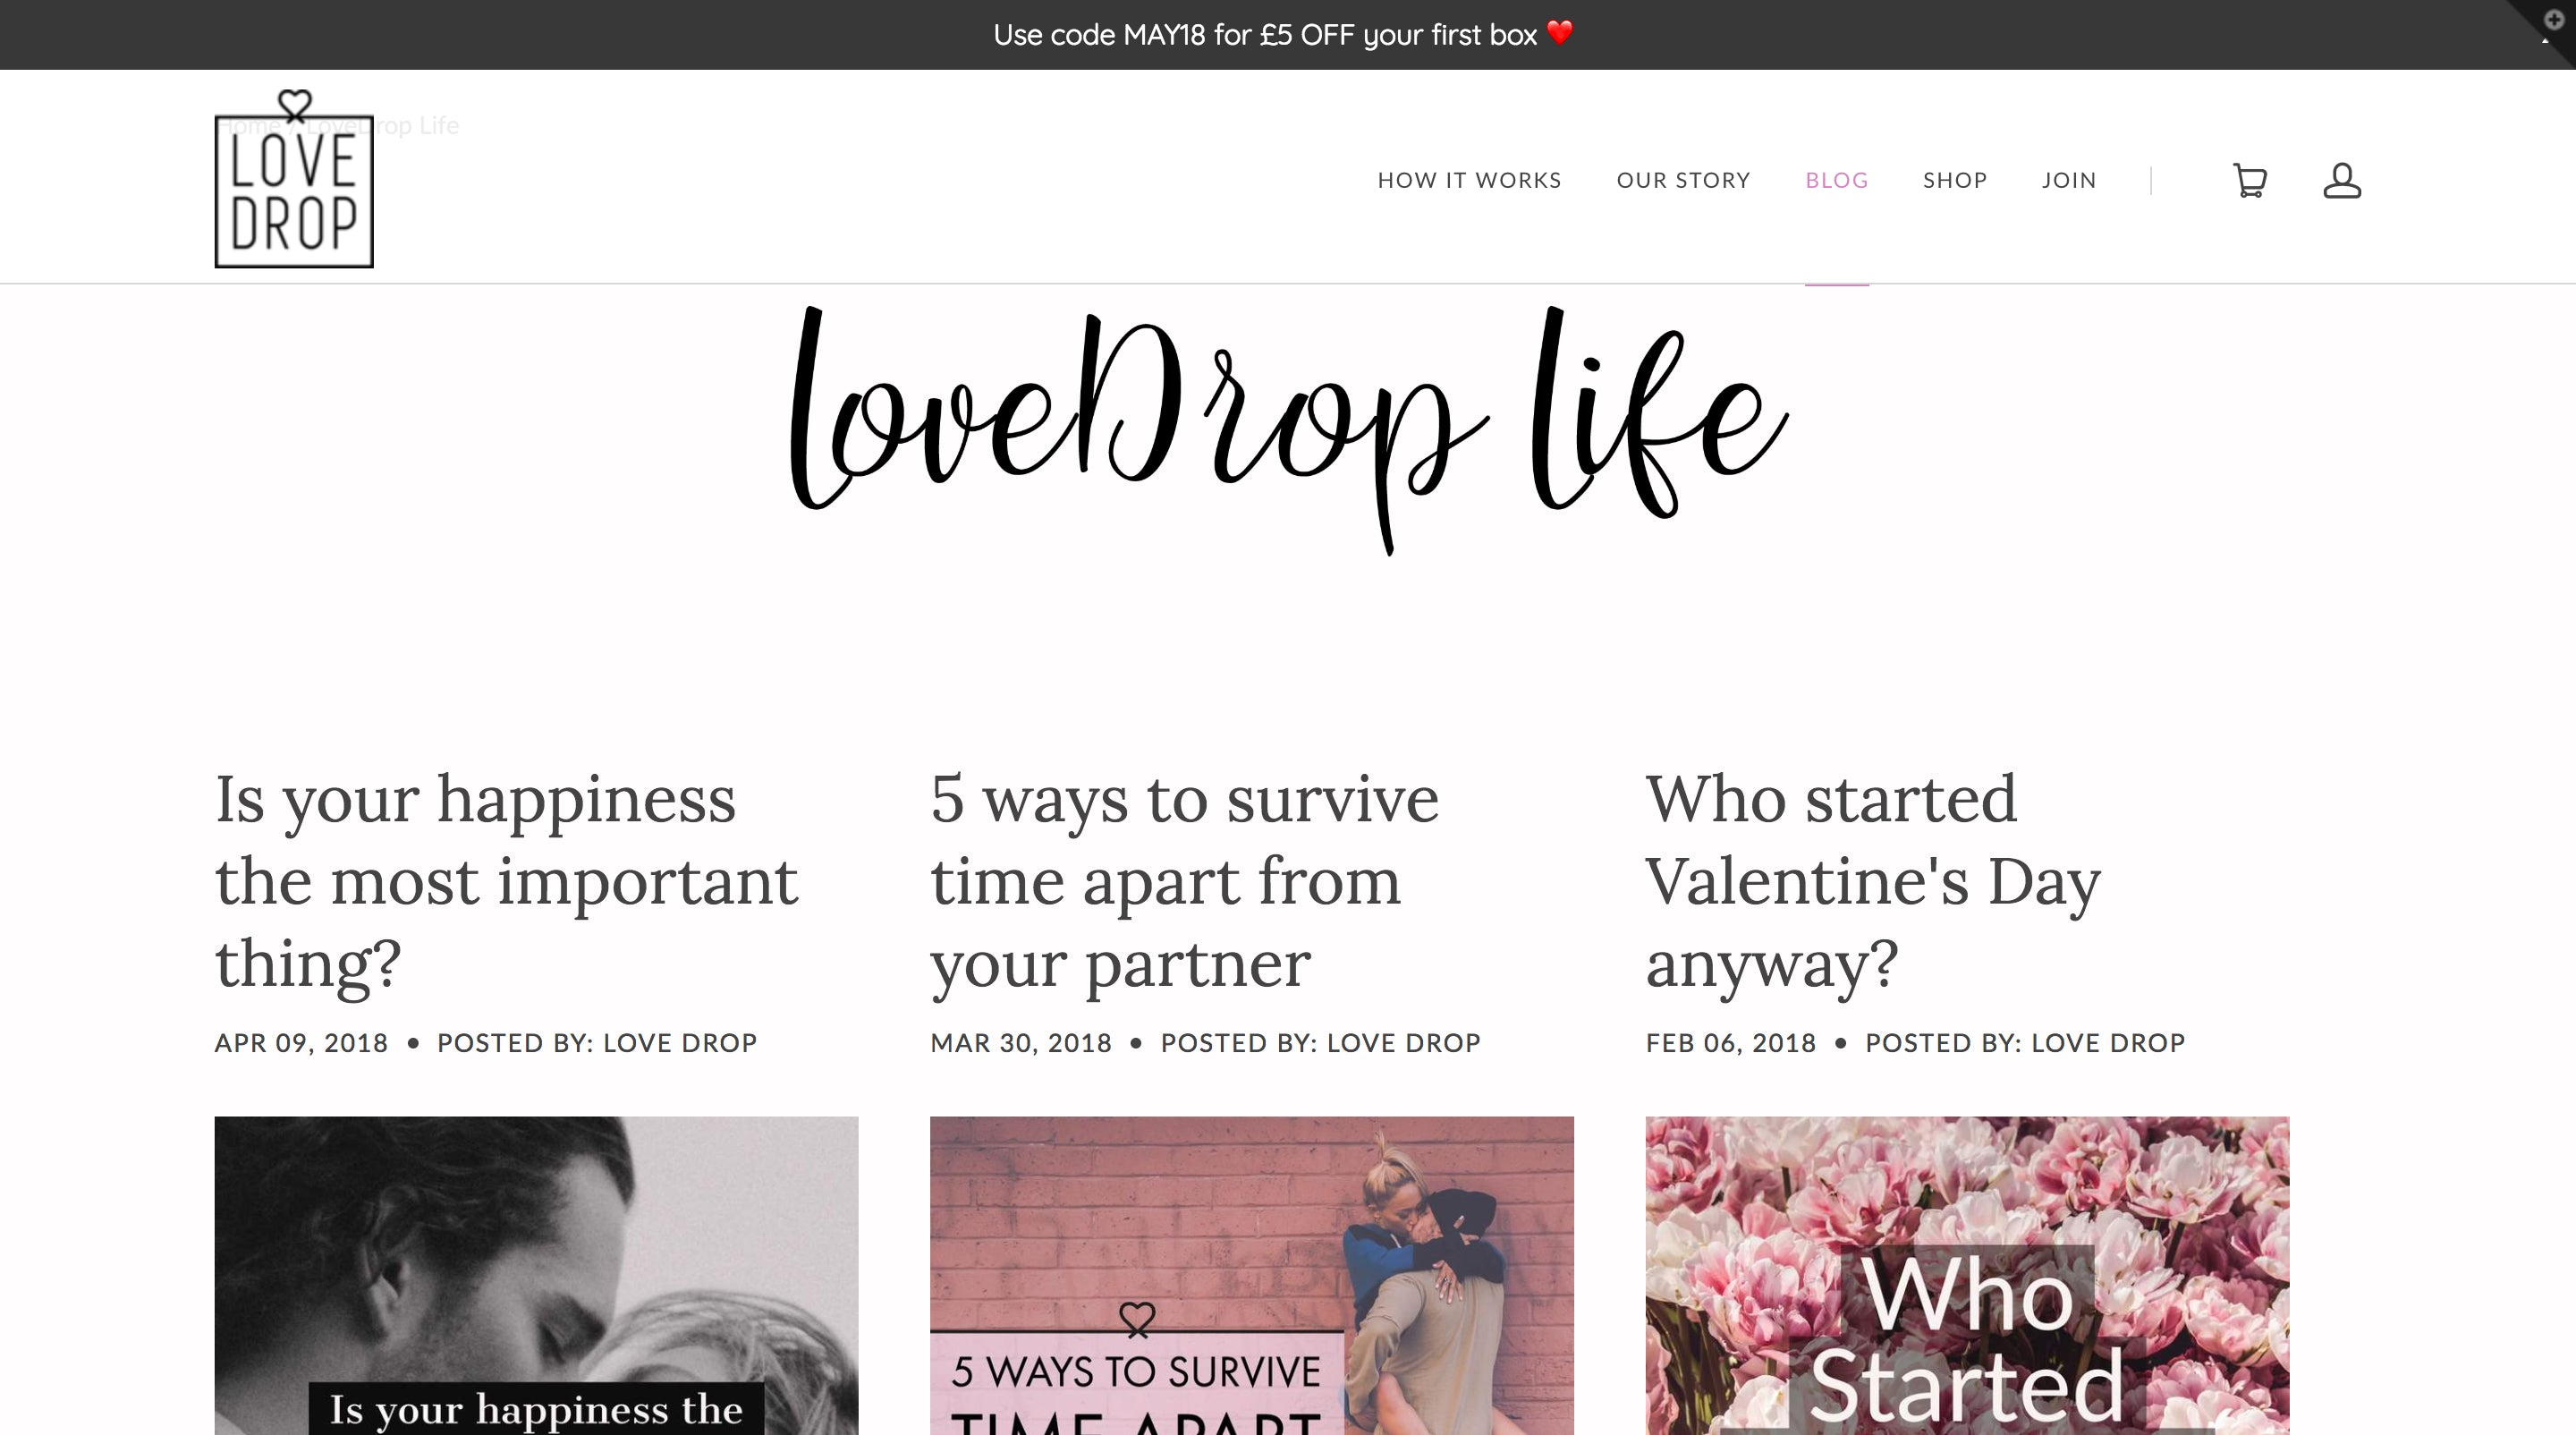 LoveDrop - The Date Night Subscription Box Screenshot - 4